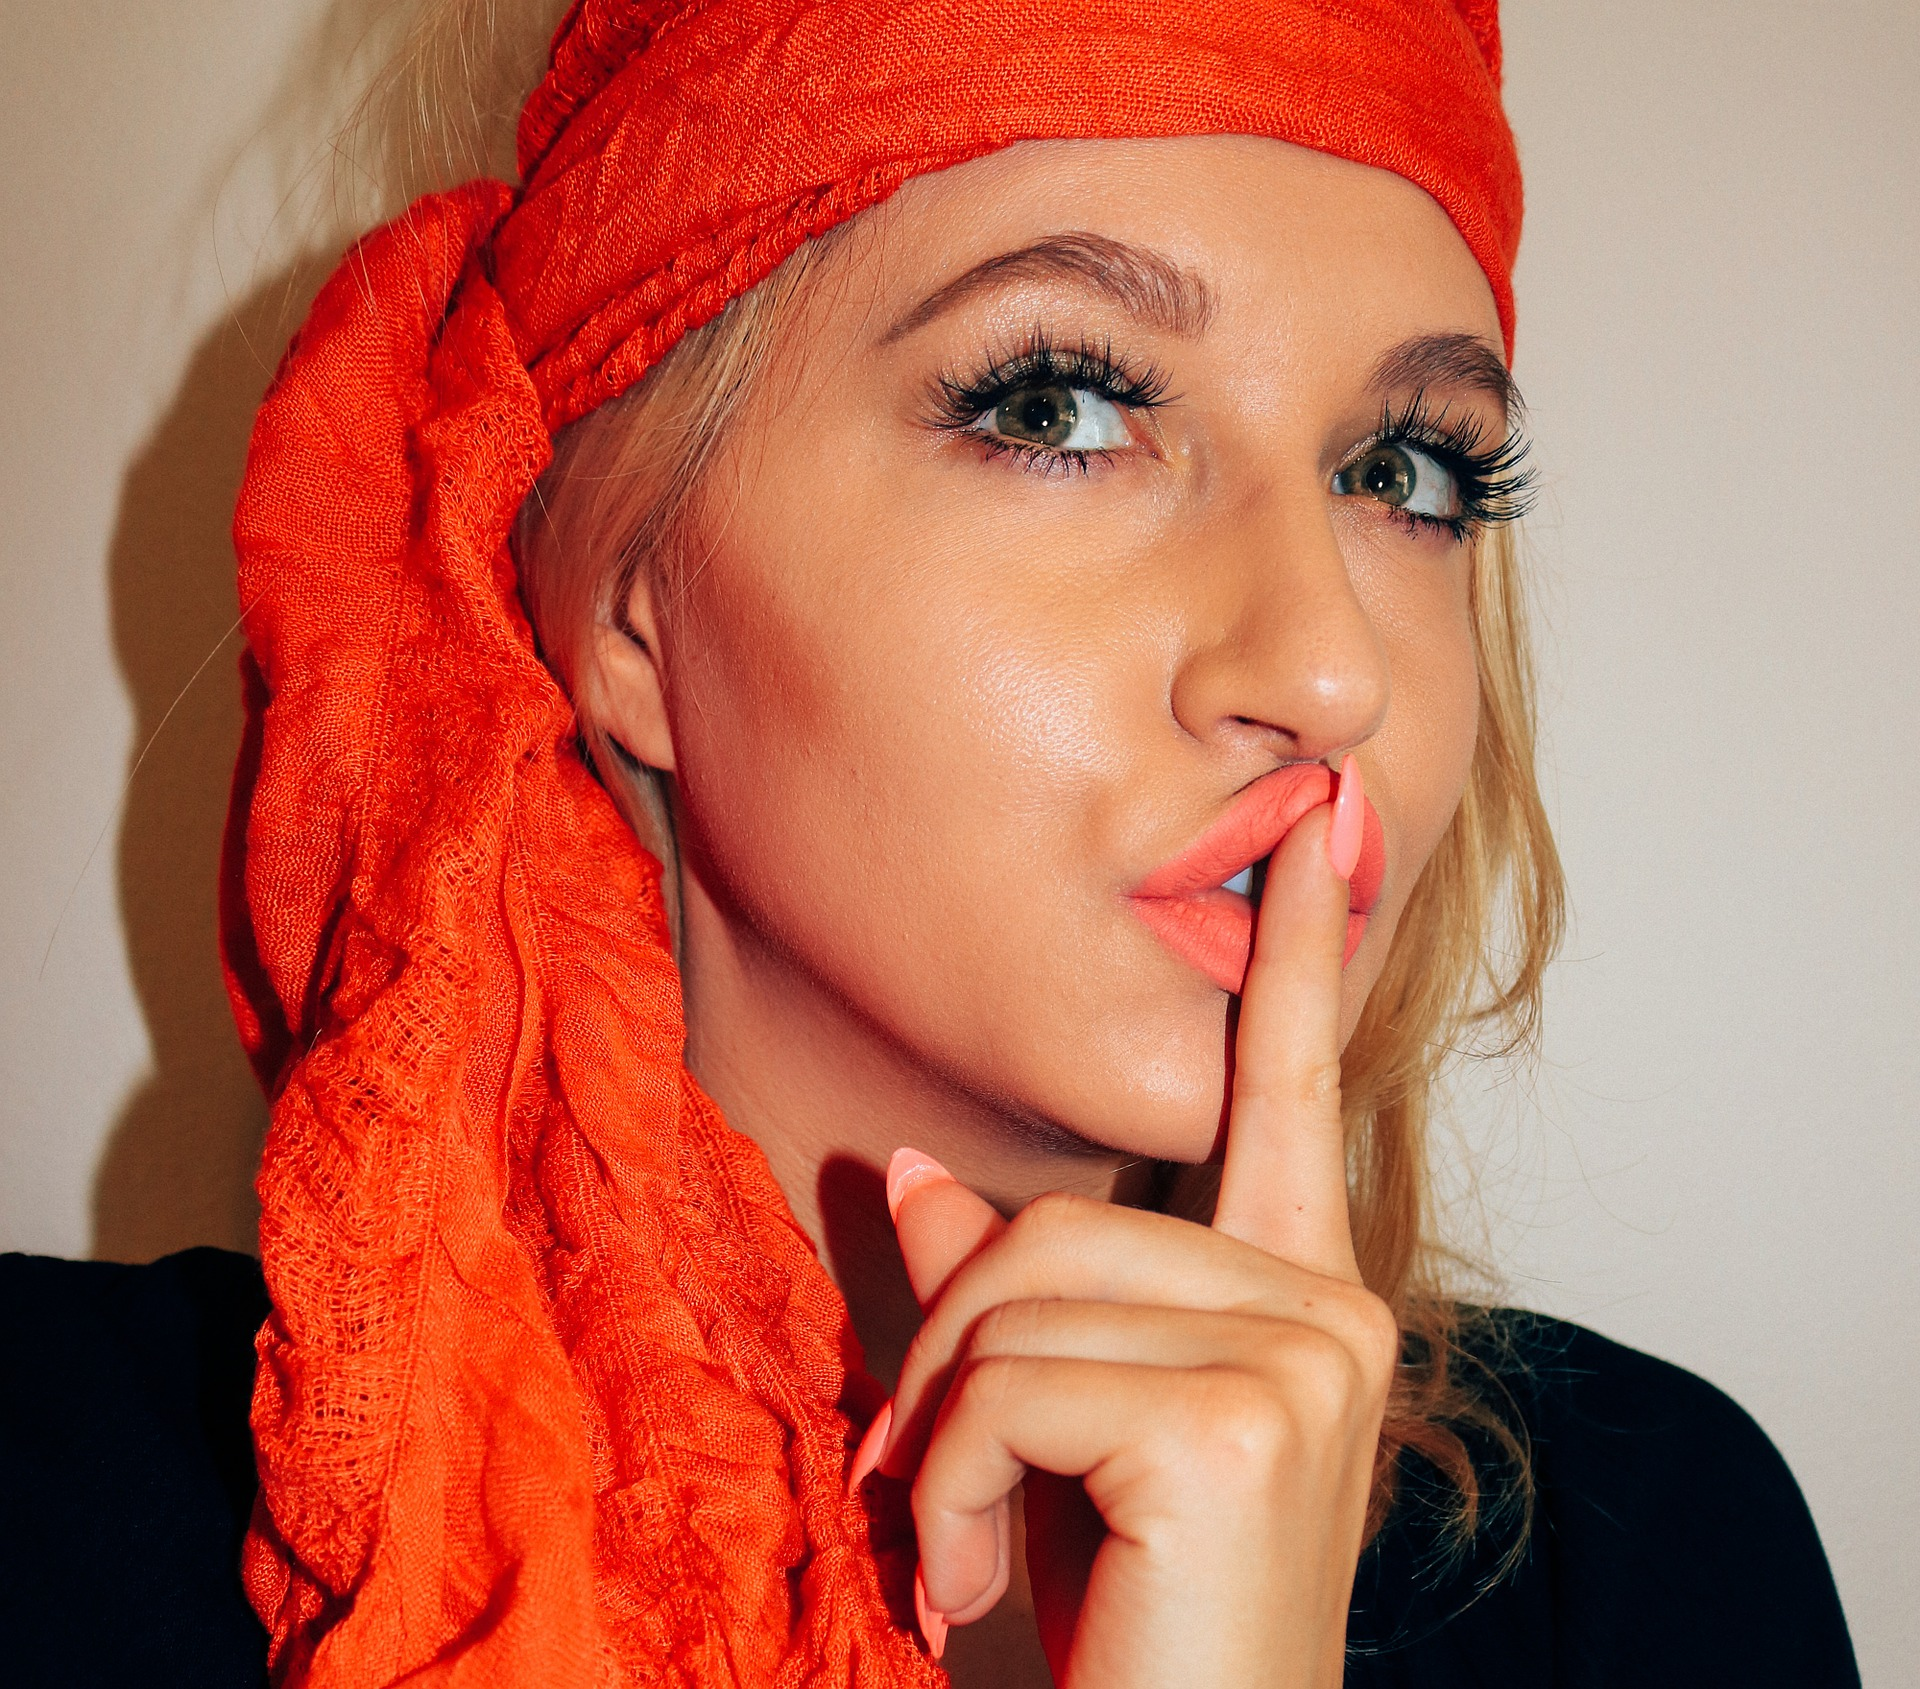 Blonde girl is wearing a read scarf on her head and also she is wearing the best eyelashes